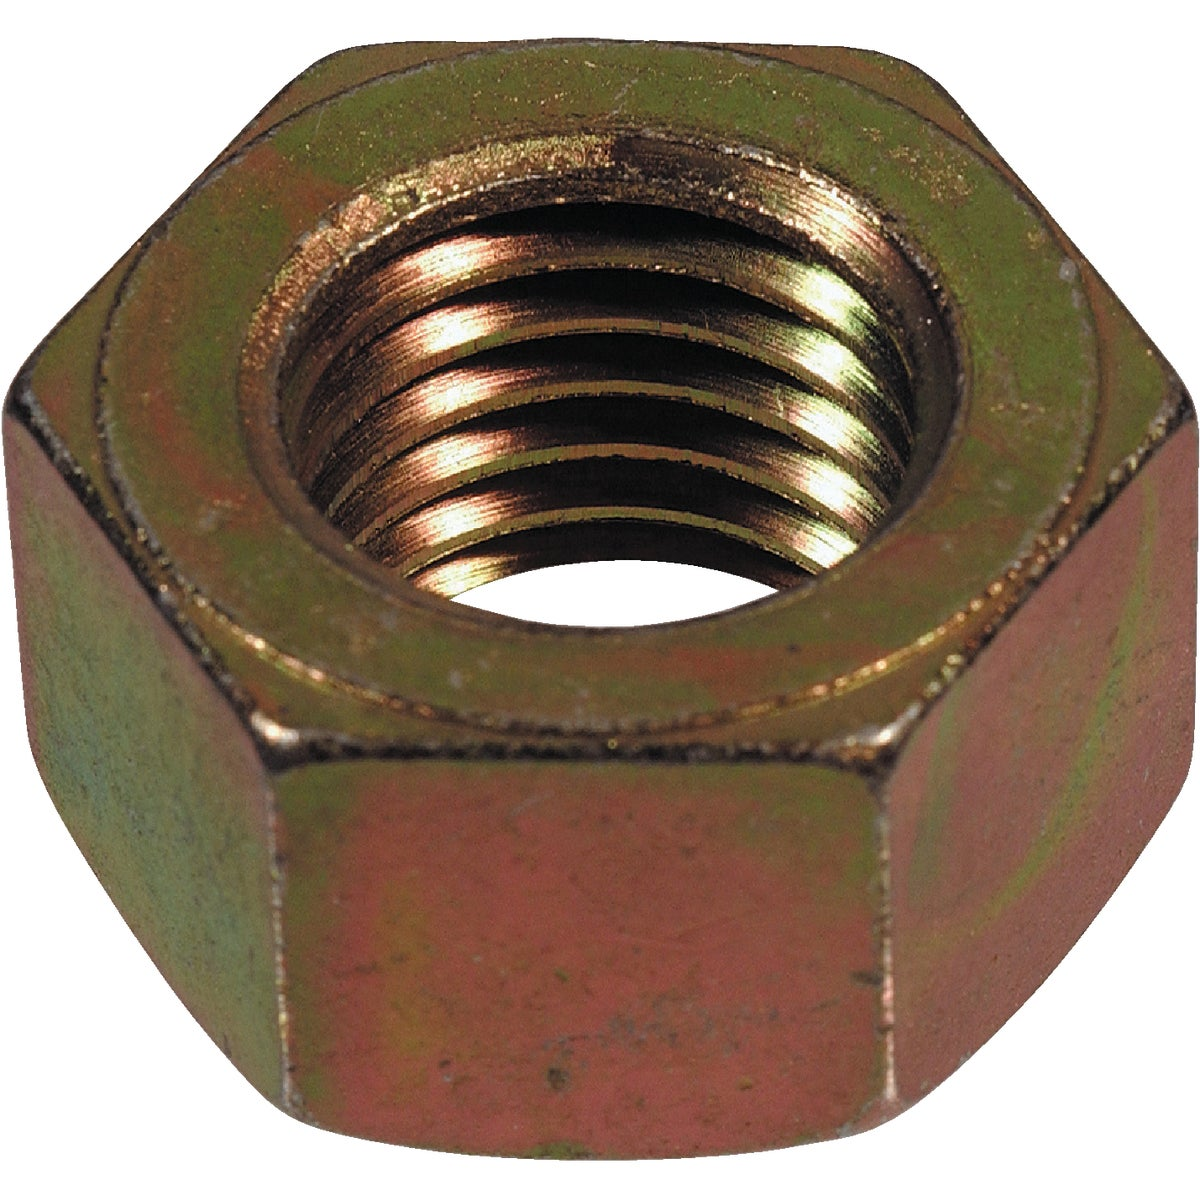 5/16-18 YC G8 HEX NUT - 180403 by Hillman Fastener